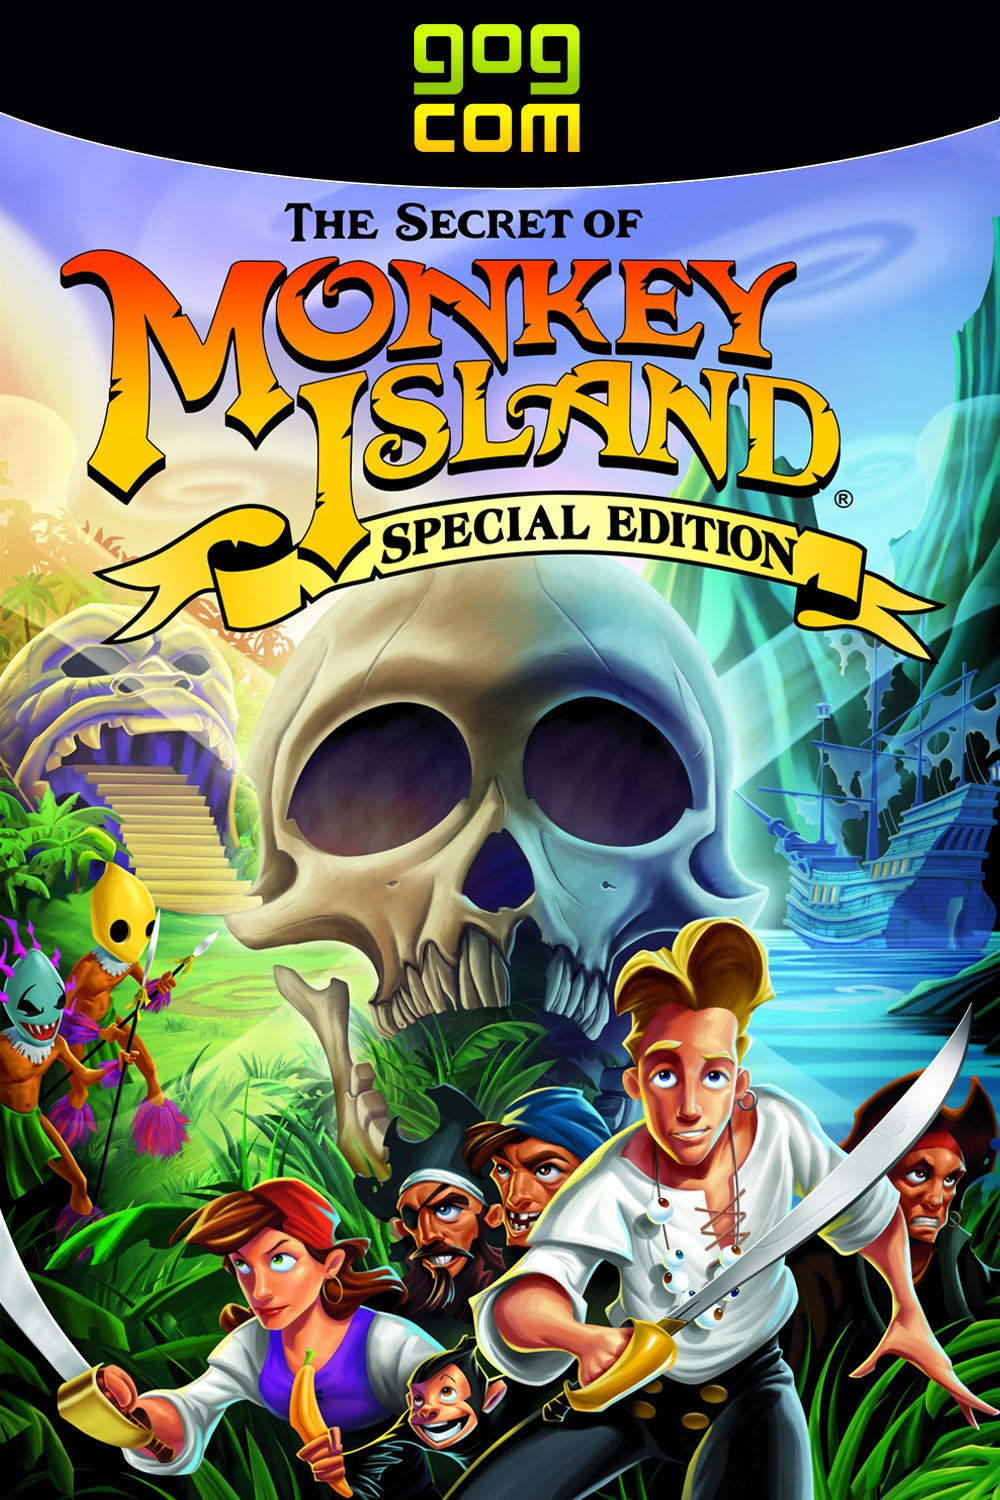 http://www.gog.com/game/the_secret_of_monkey_island_special_edition